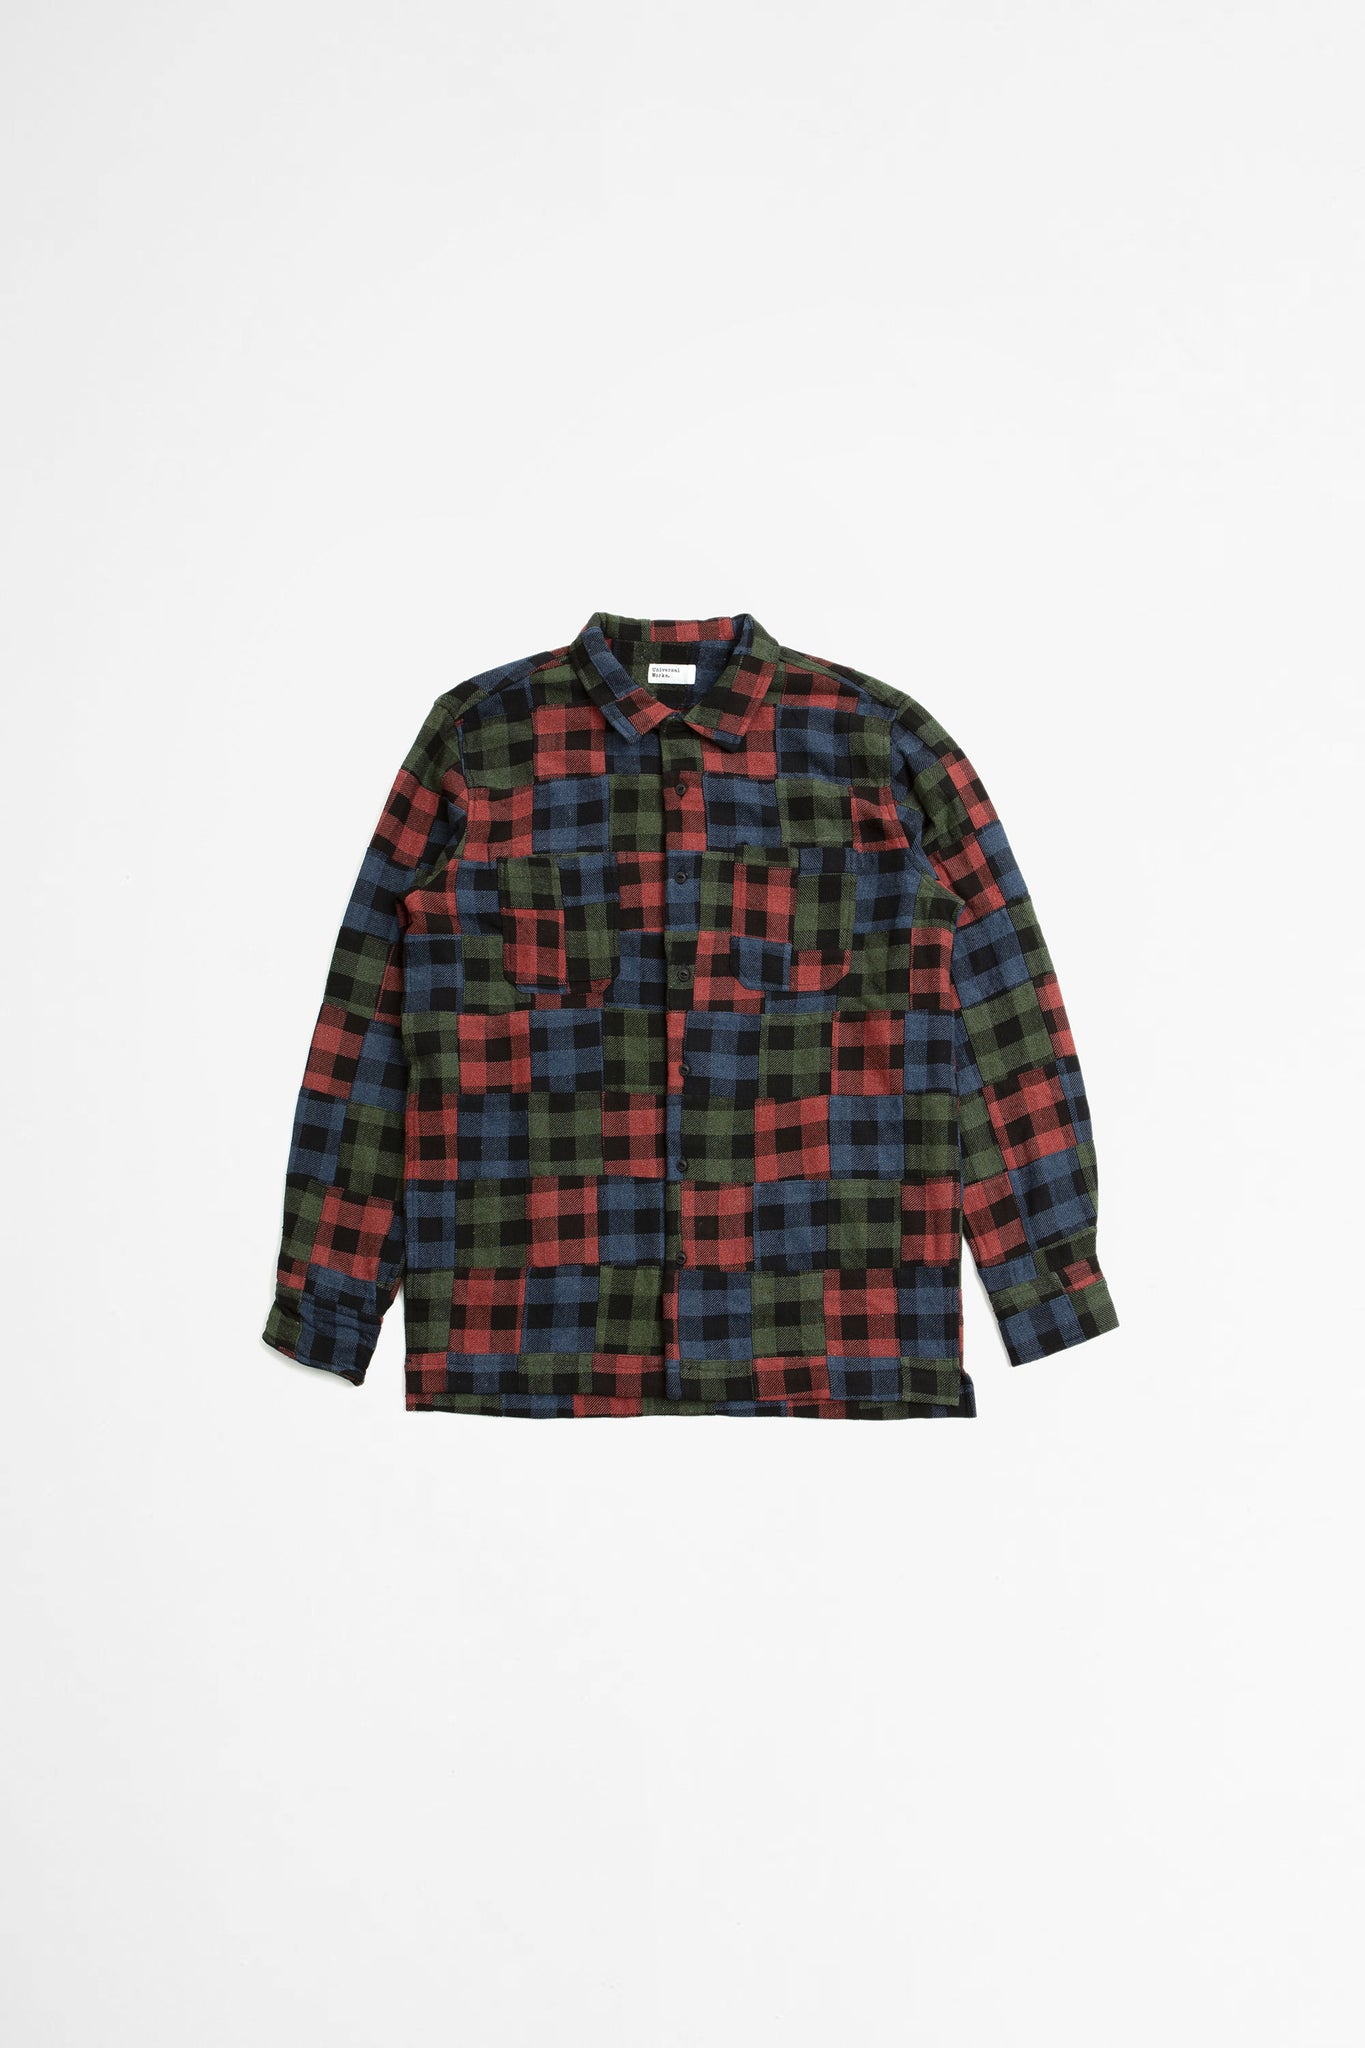 Garage shirt II brushed patchwork multi